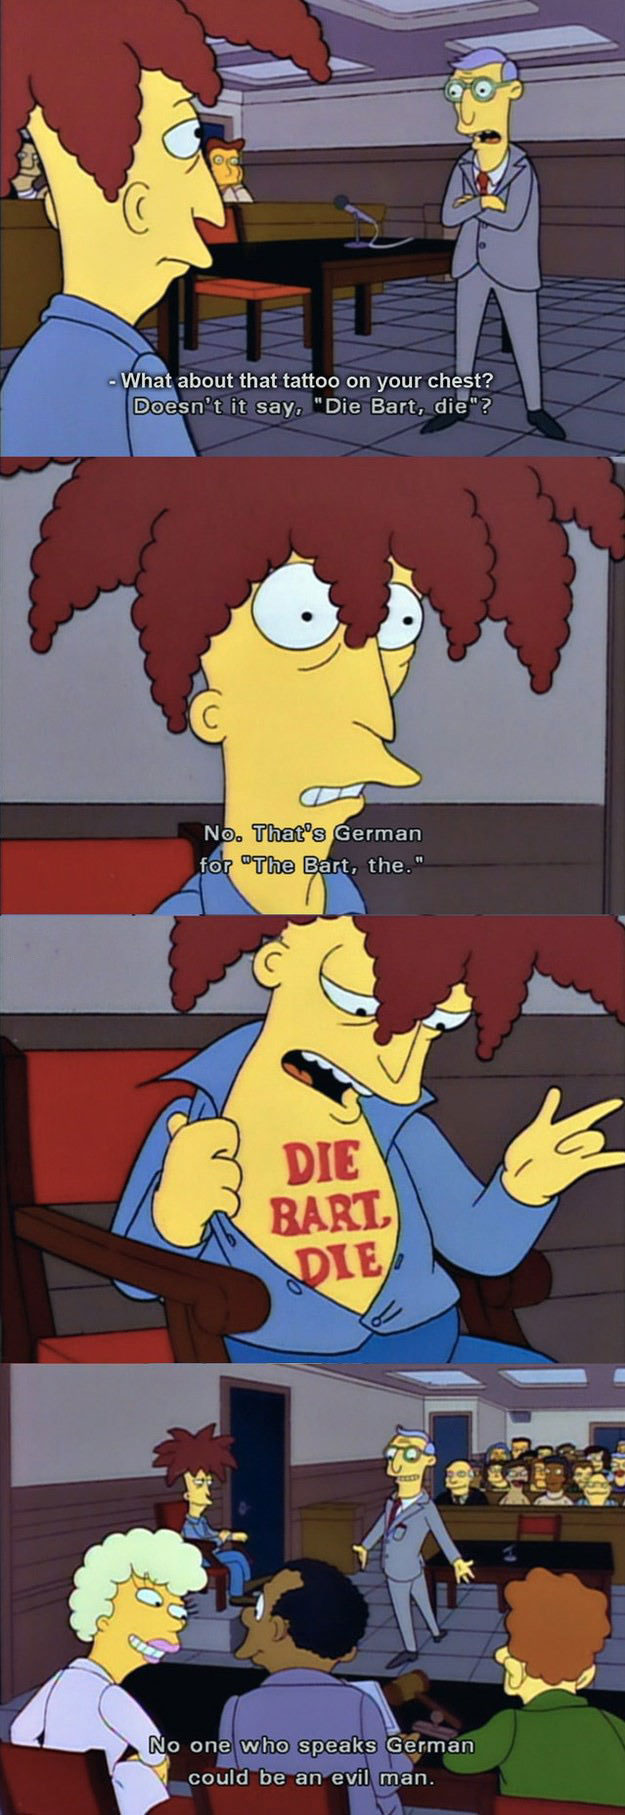 what about that tattoo on your chest, doesn't it say die bart die, no that's german for the bart the, no on who speaks german could be an evil man, the simpsons